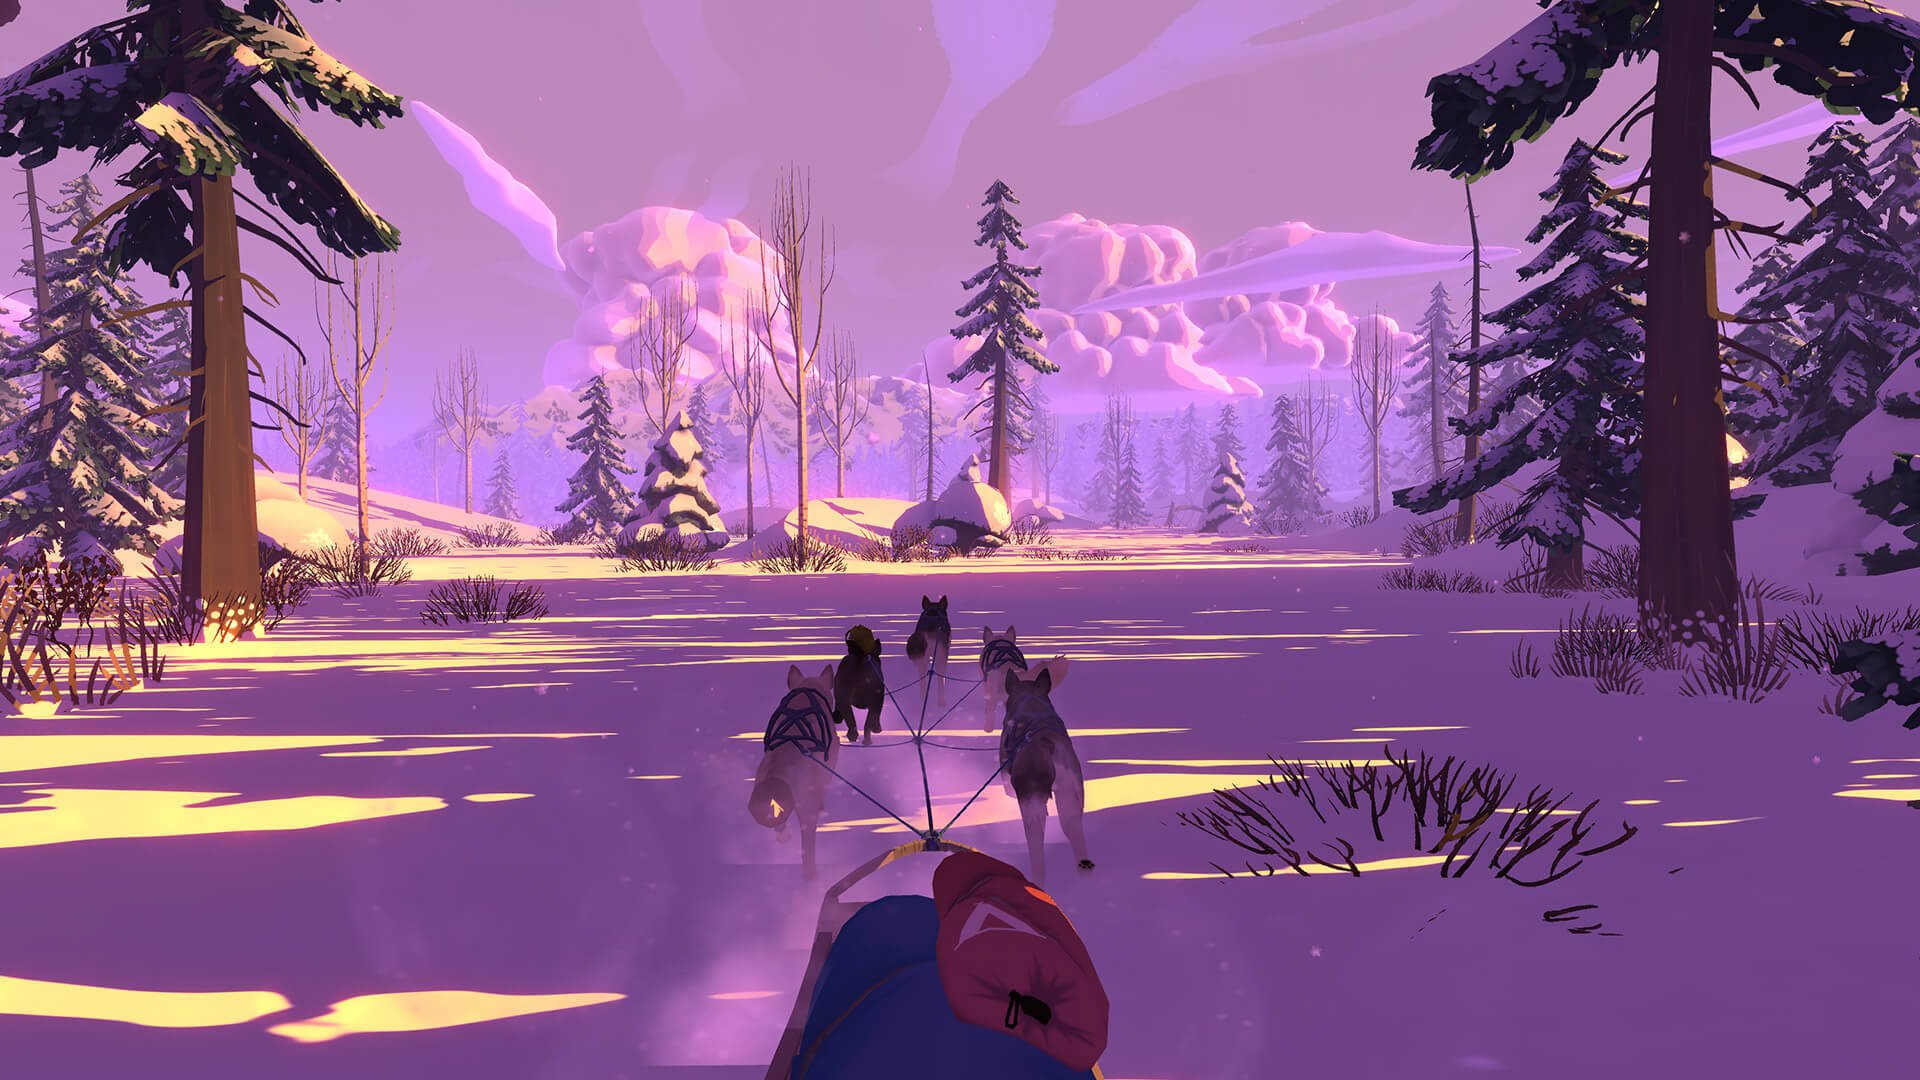 Team up with 5 sled dogs and survive the Alaskan wilderness in The Red Lantern.